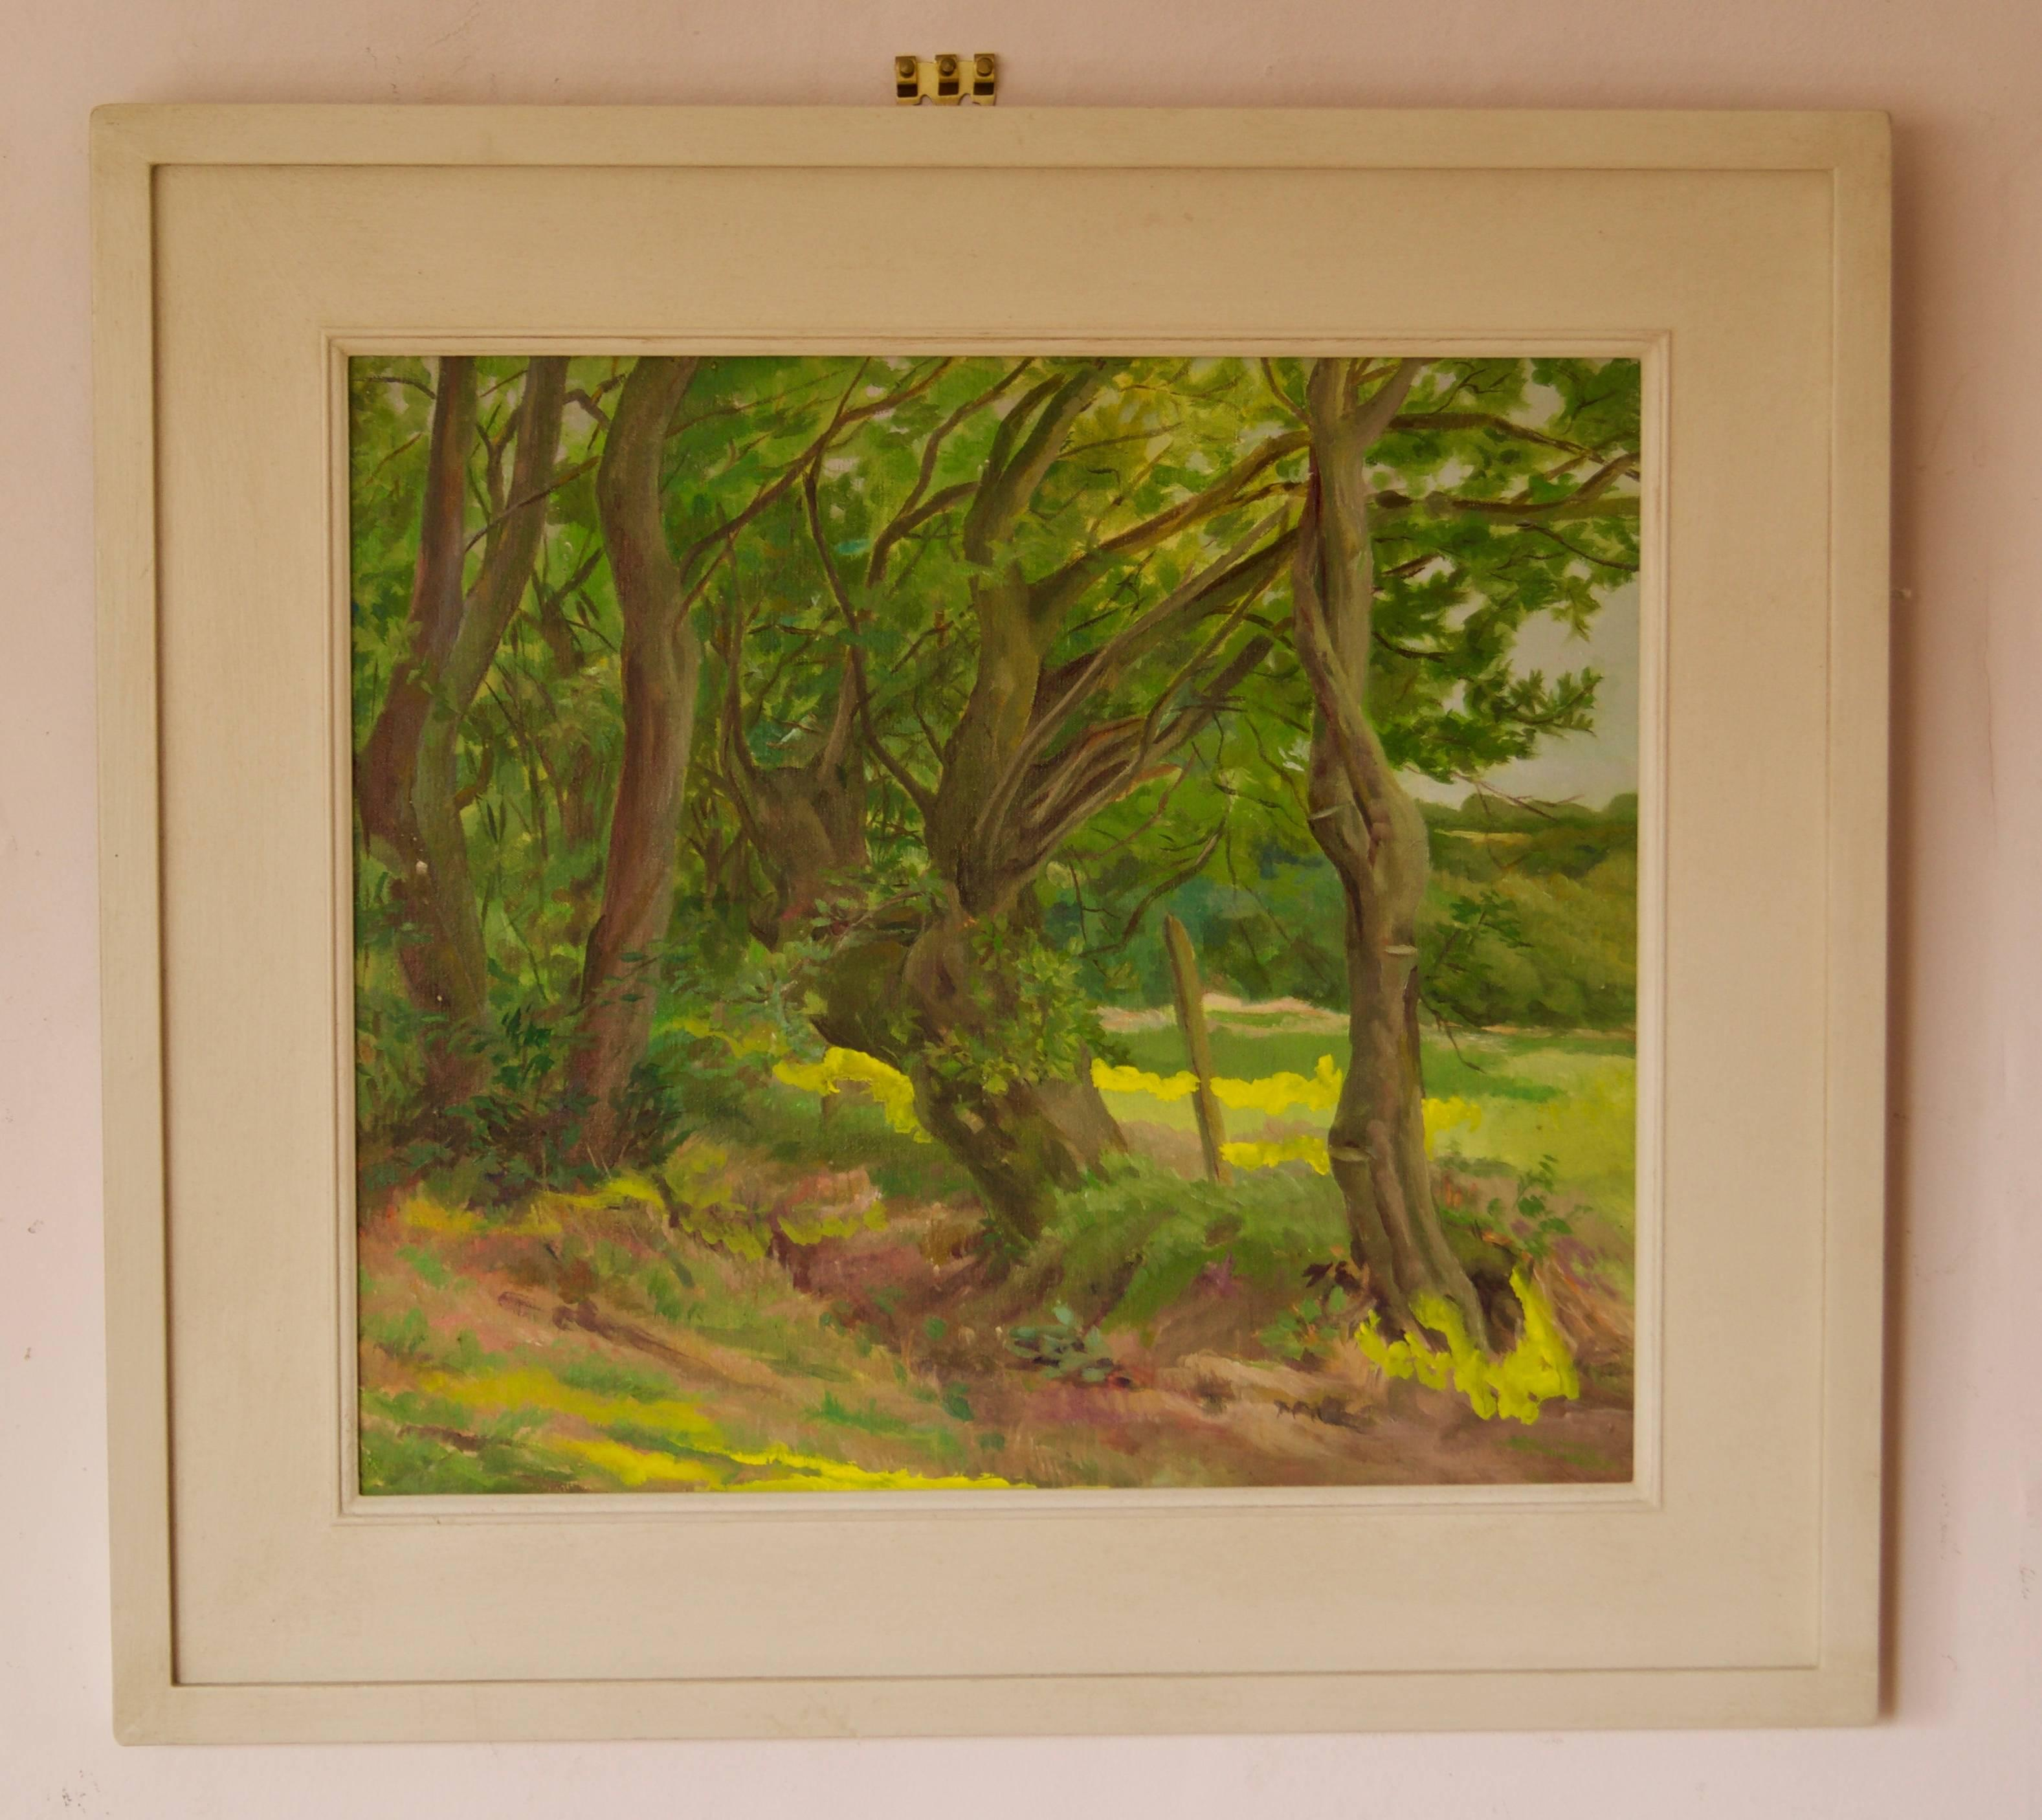 Into the Forest - Mid 20th Century Impressionist Oil Landscape by Dorothy King